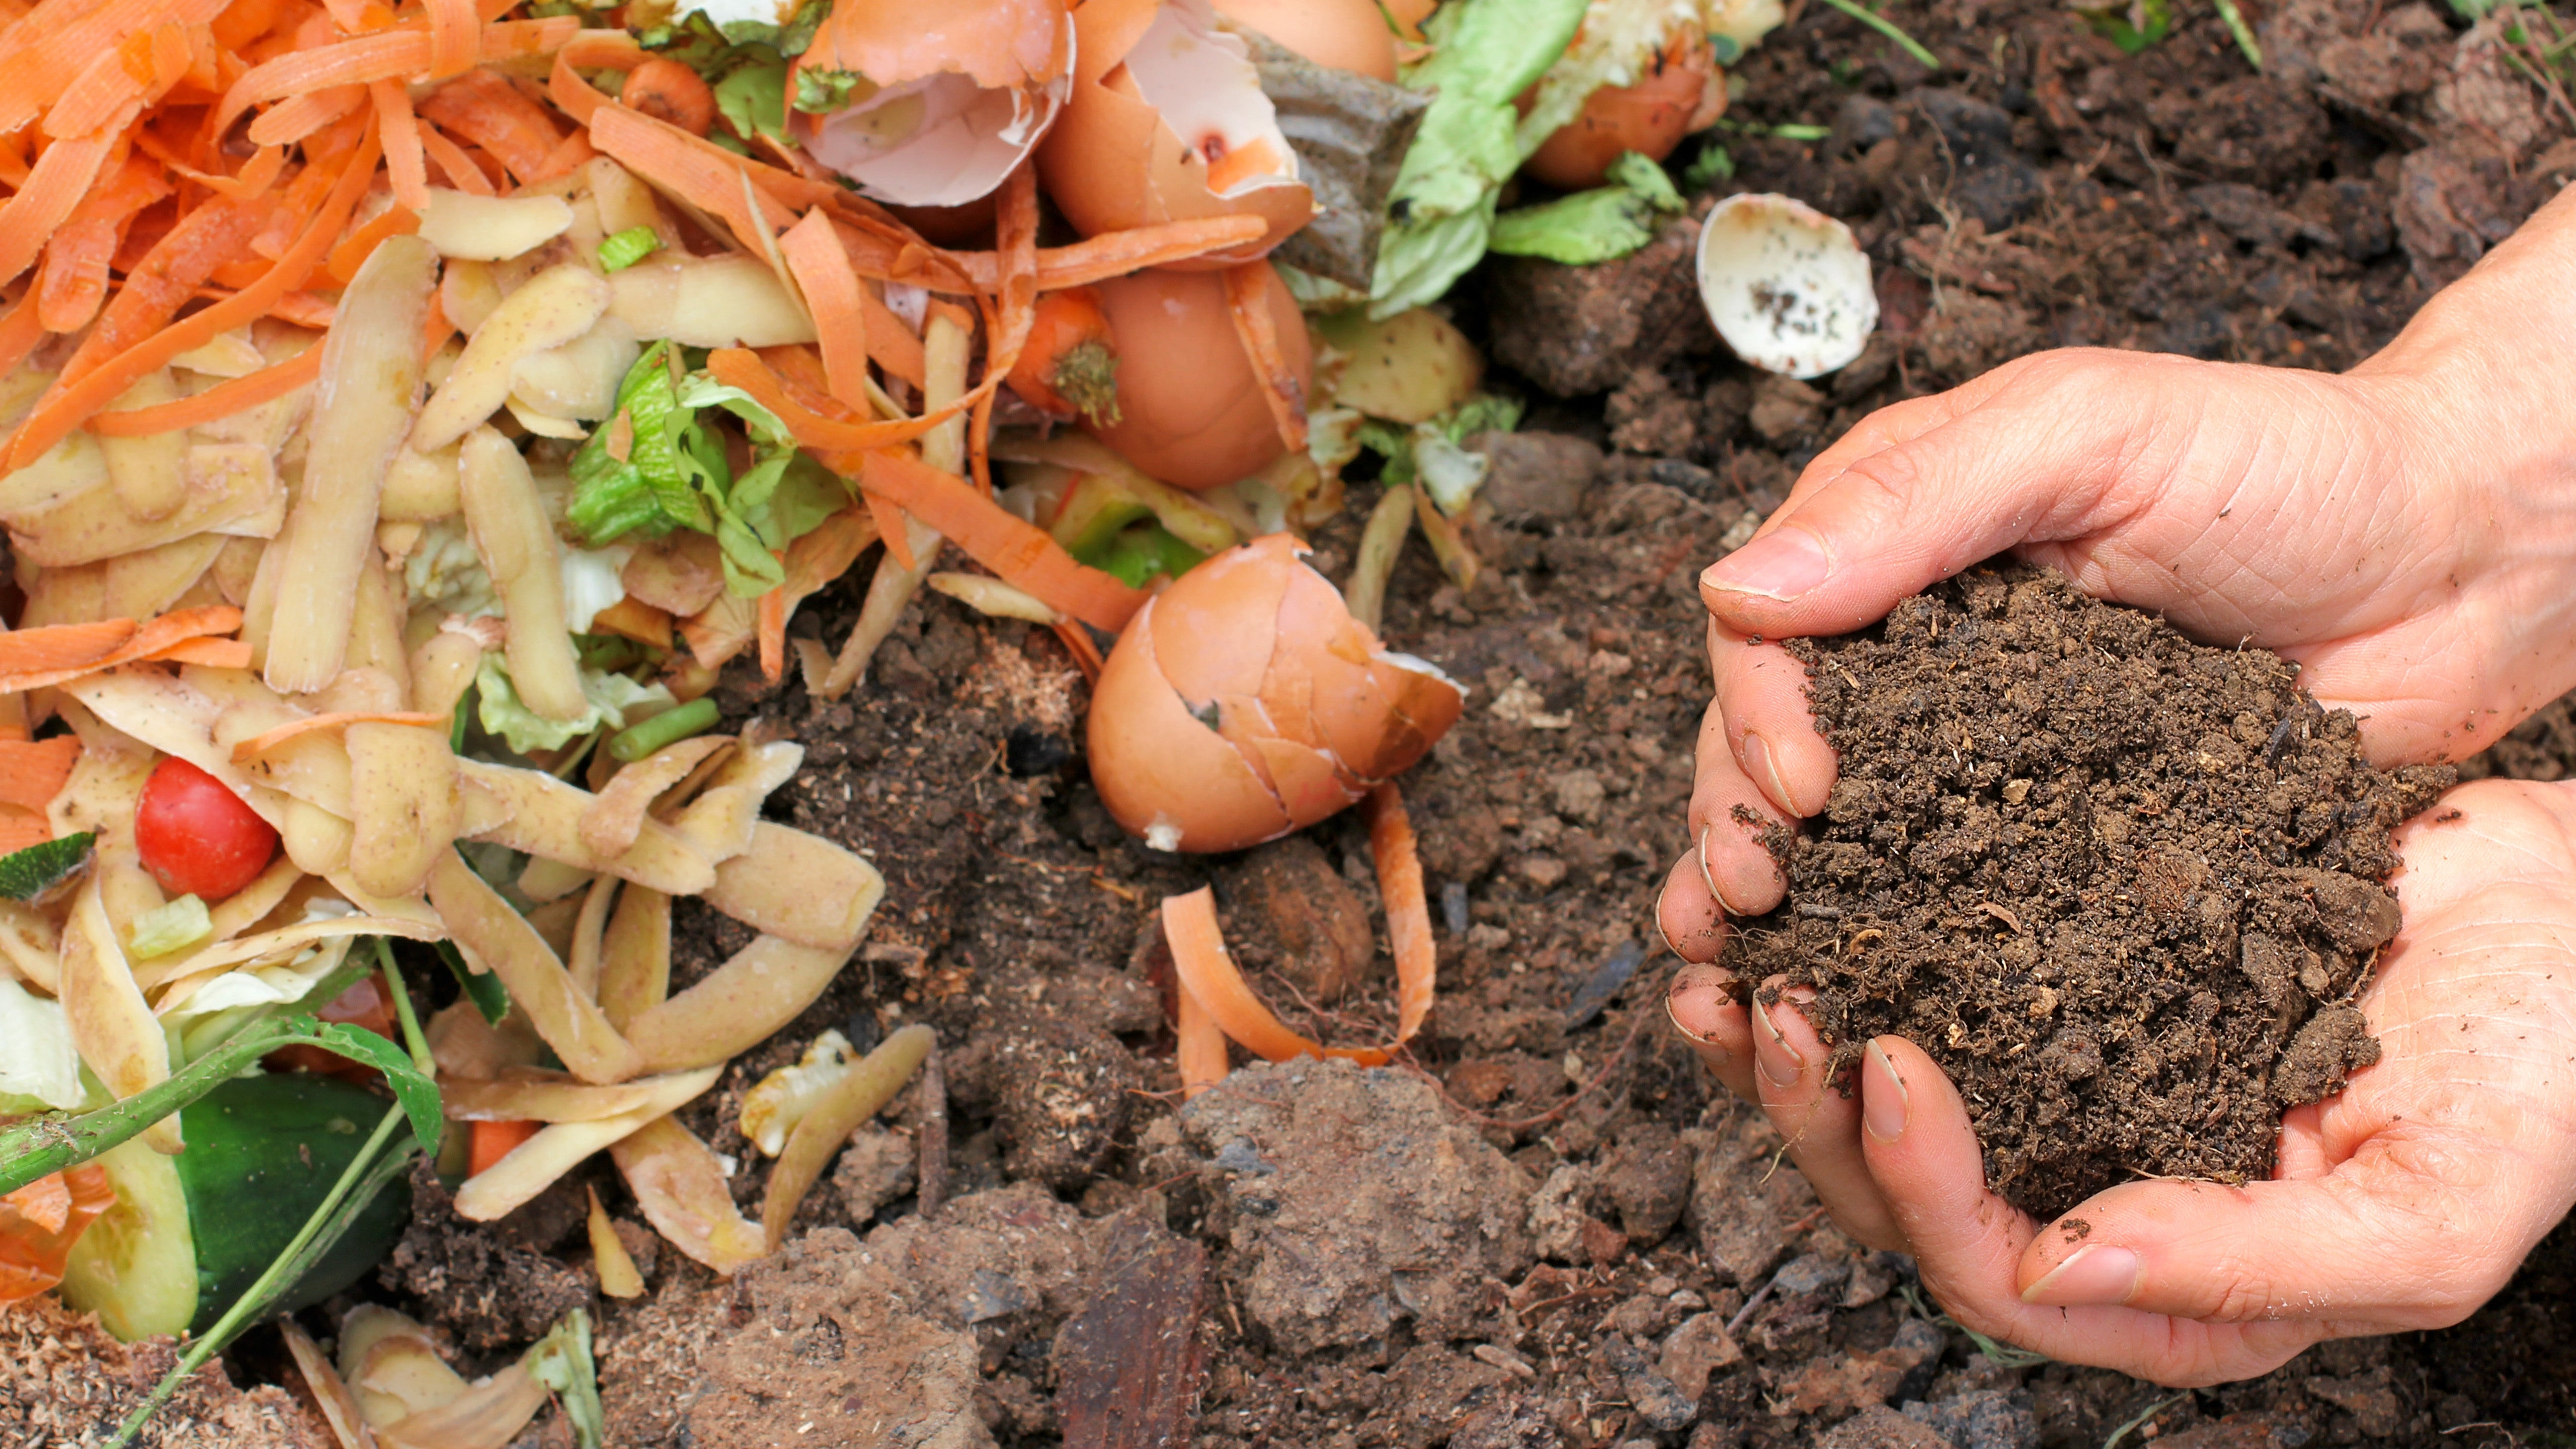 How To Compost In Your Apartment